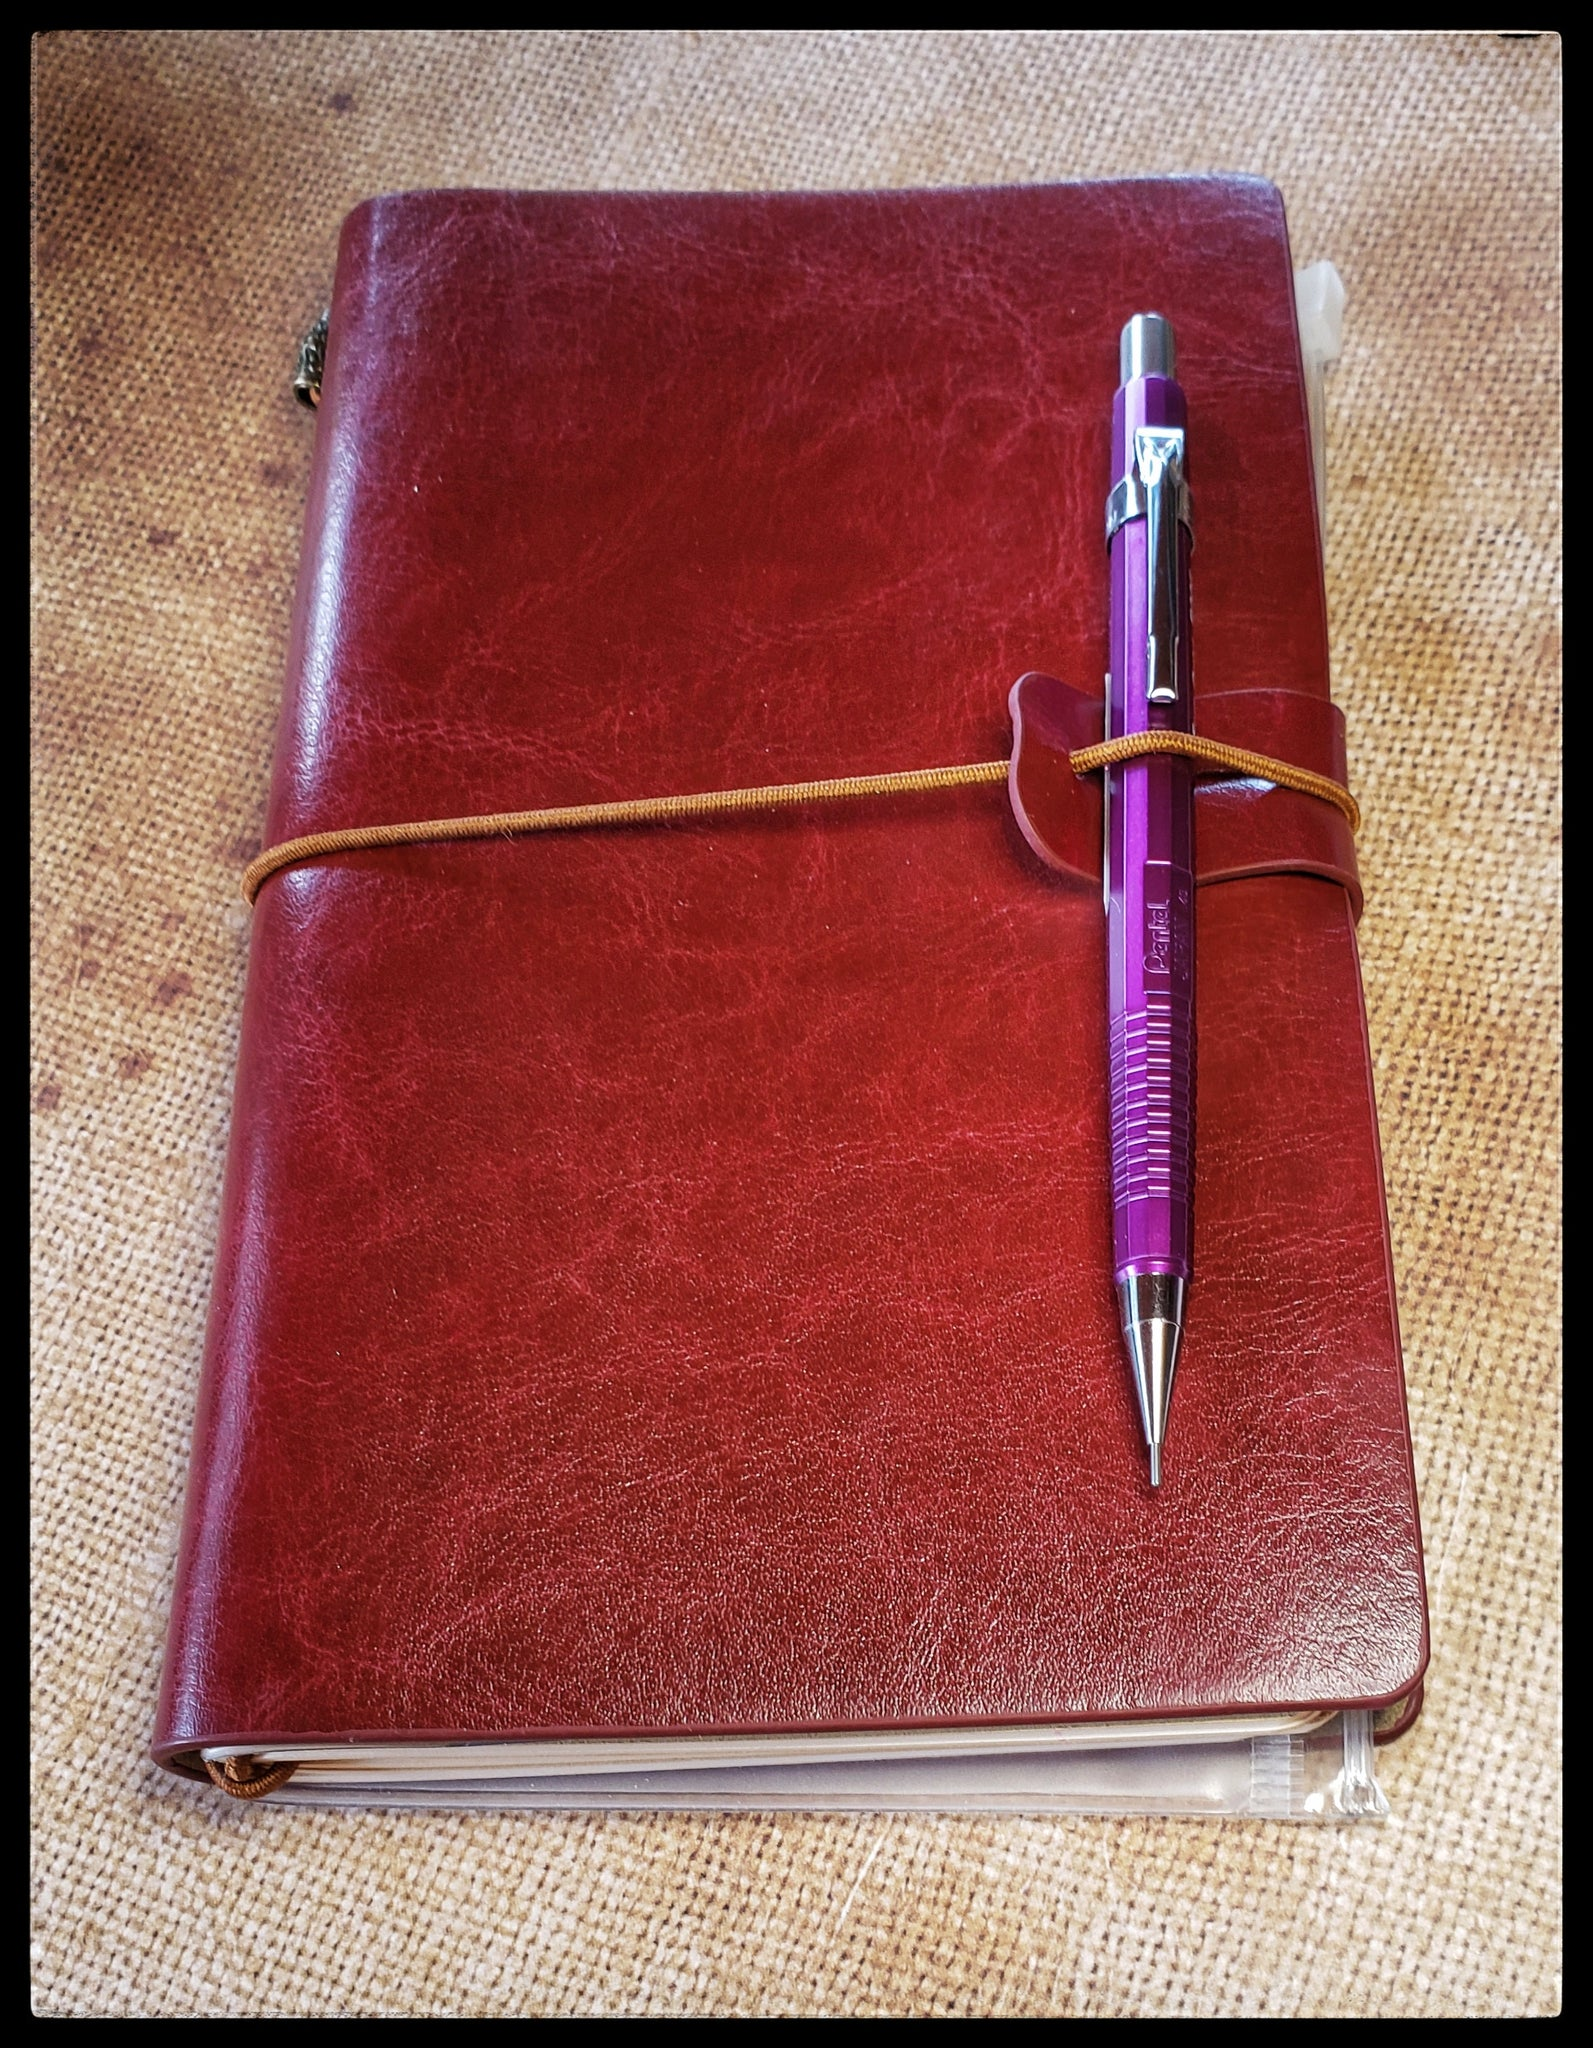 "Burgundy Voyager Notebook  Lined paper. Dot Grid paper. Blank paper   Zippered storage pocket   Adaptable. Easy to swap inserts  Protective faux leather cover   Ideal for bullet journaling, sketching, note-taking,lettering and more  Includes three 60 page inserts   Spine bands secure notebook contents   Elastic band closure   4.5"" x 8""  Mechanical  pencil not included. See our Writing selection to purchase separately ADA The Gilded Page Santa Fe New Mexico"